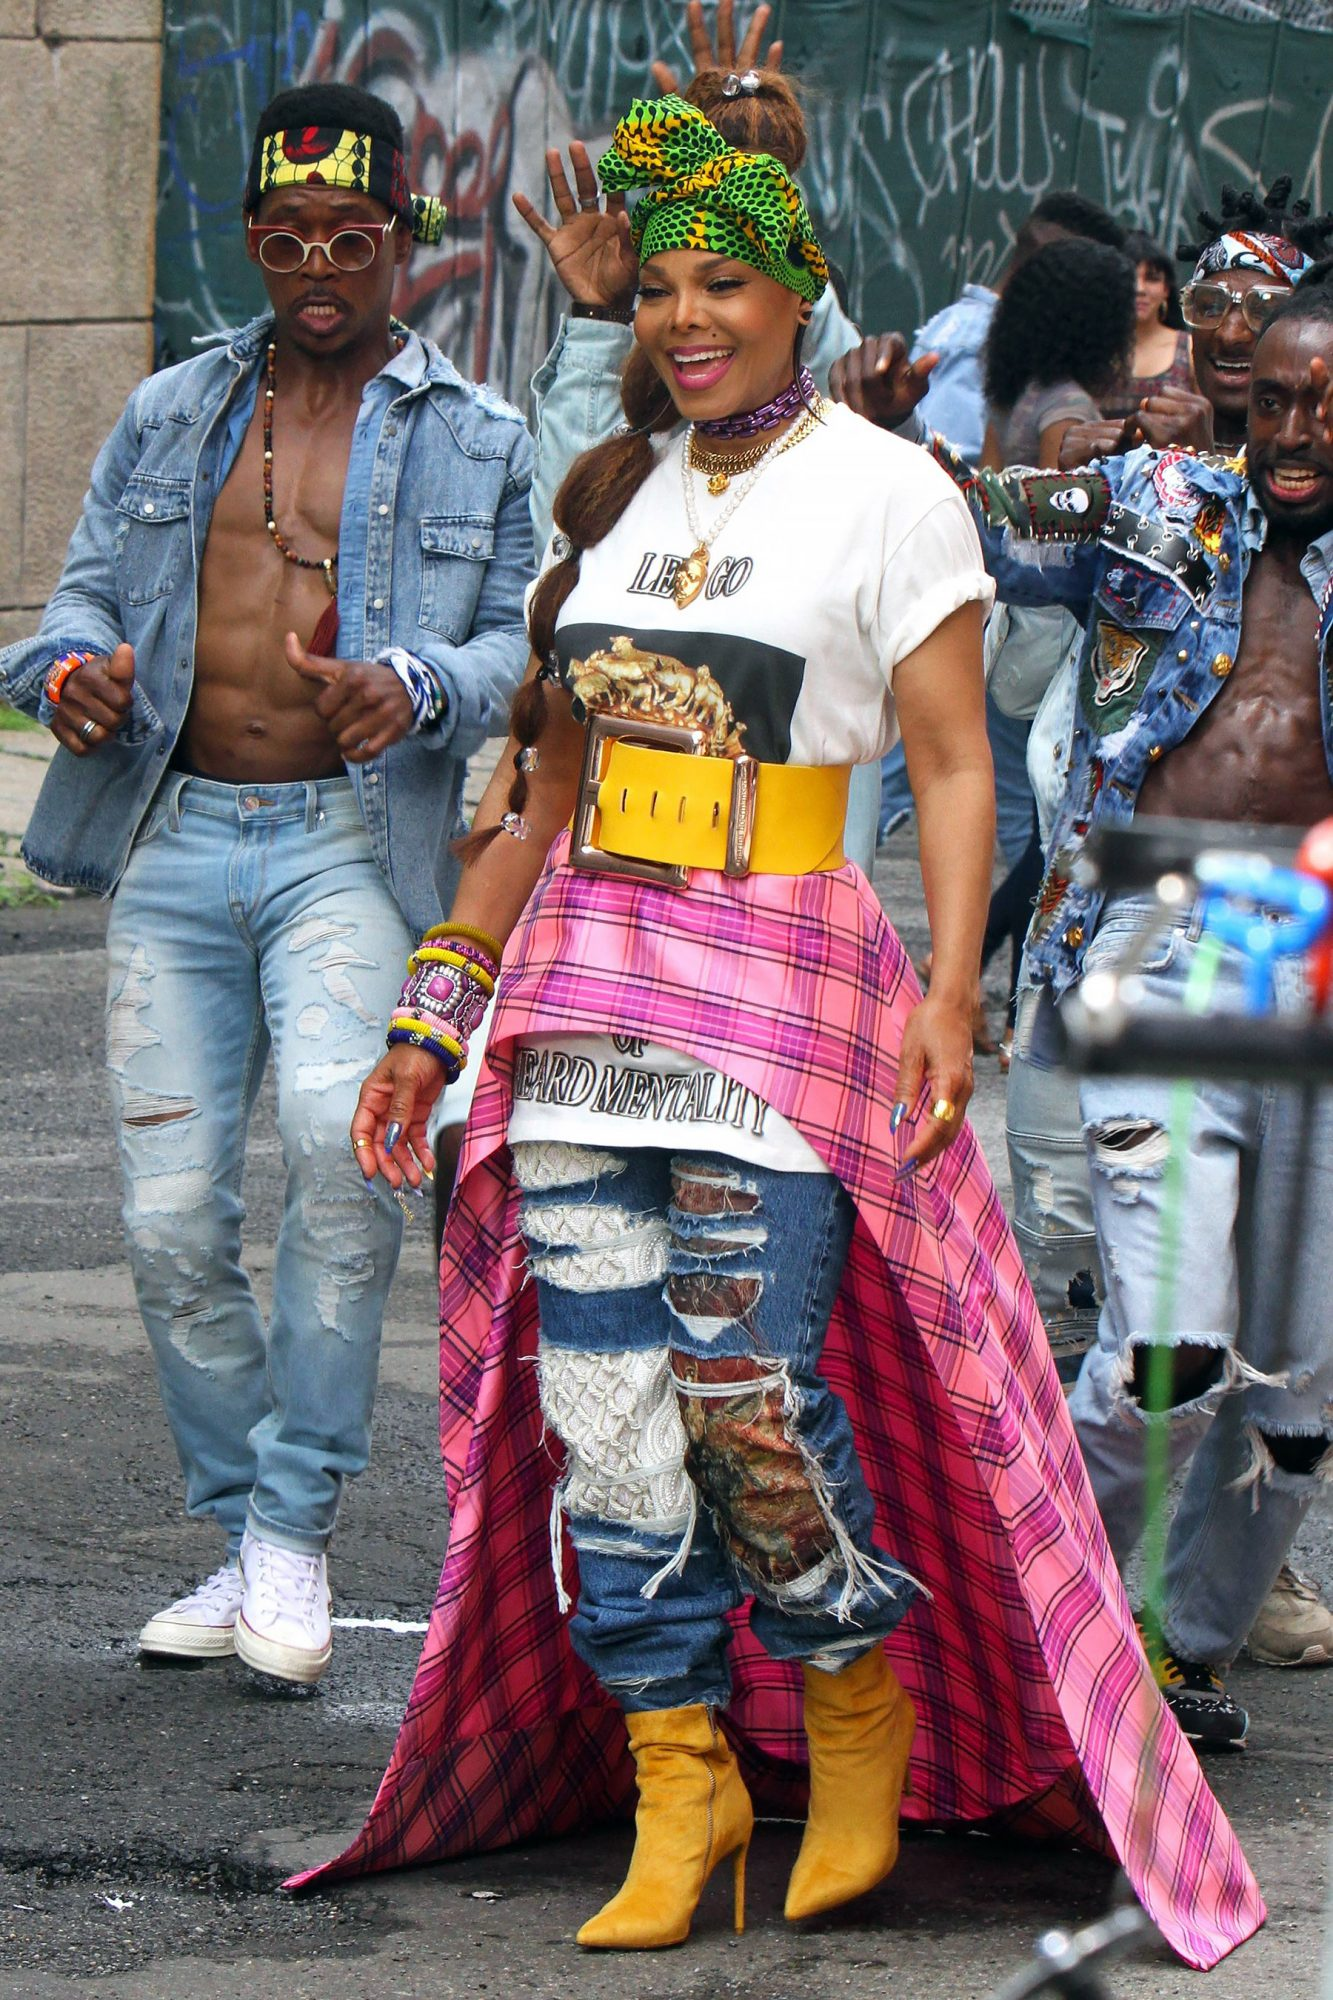 A colorfully dressed Janet Jackson dances as she films on the set of her new video 'Made for Now' in Williamsburg, Brooklyn